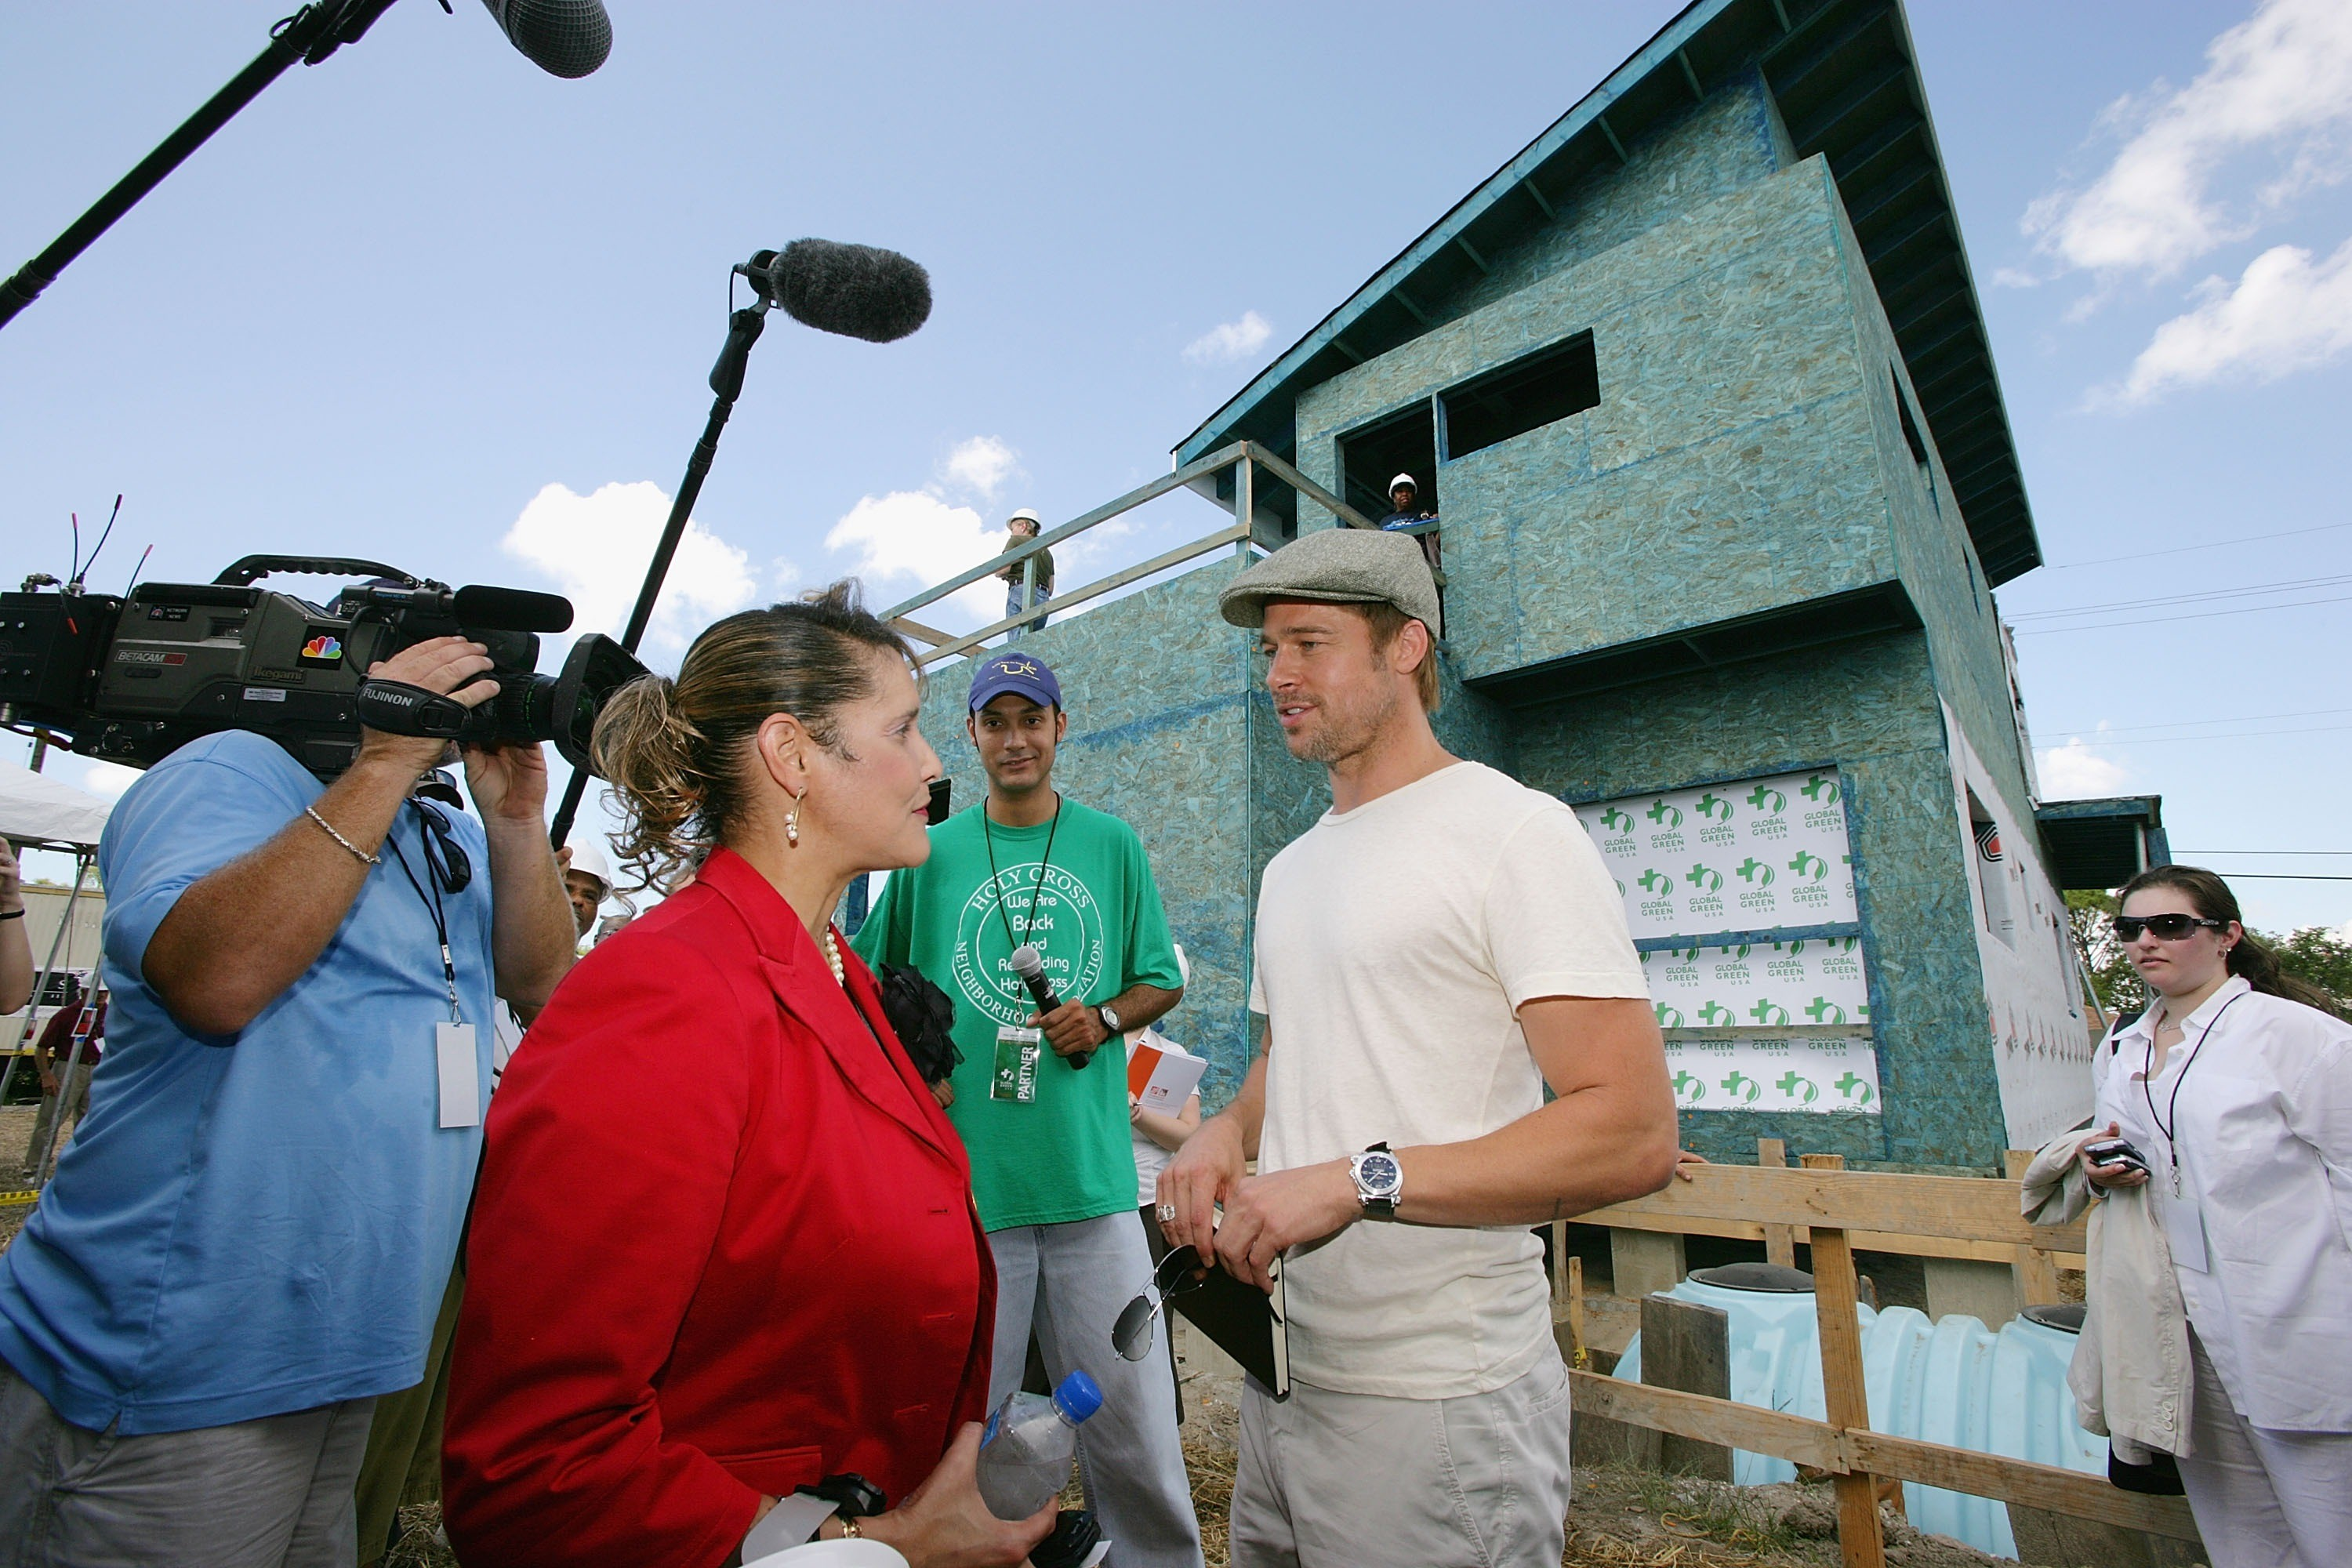 Brad Pitt in 2007, at a press conference on the project for the construction of houses in New Orleans, louisiana (picture: Getty Images)